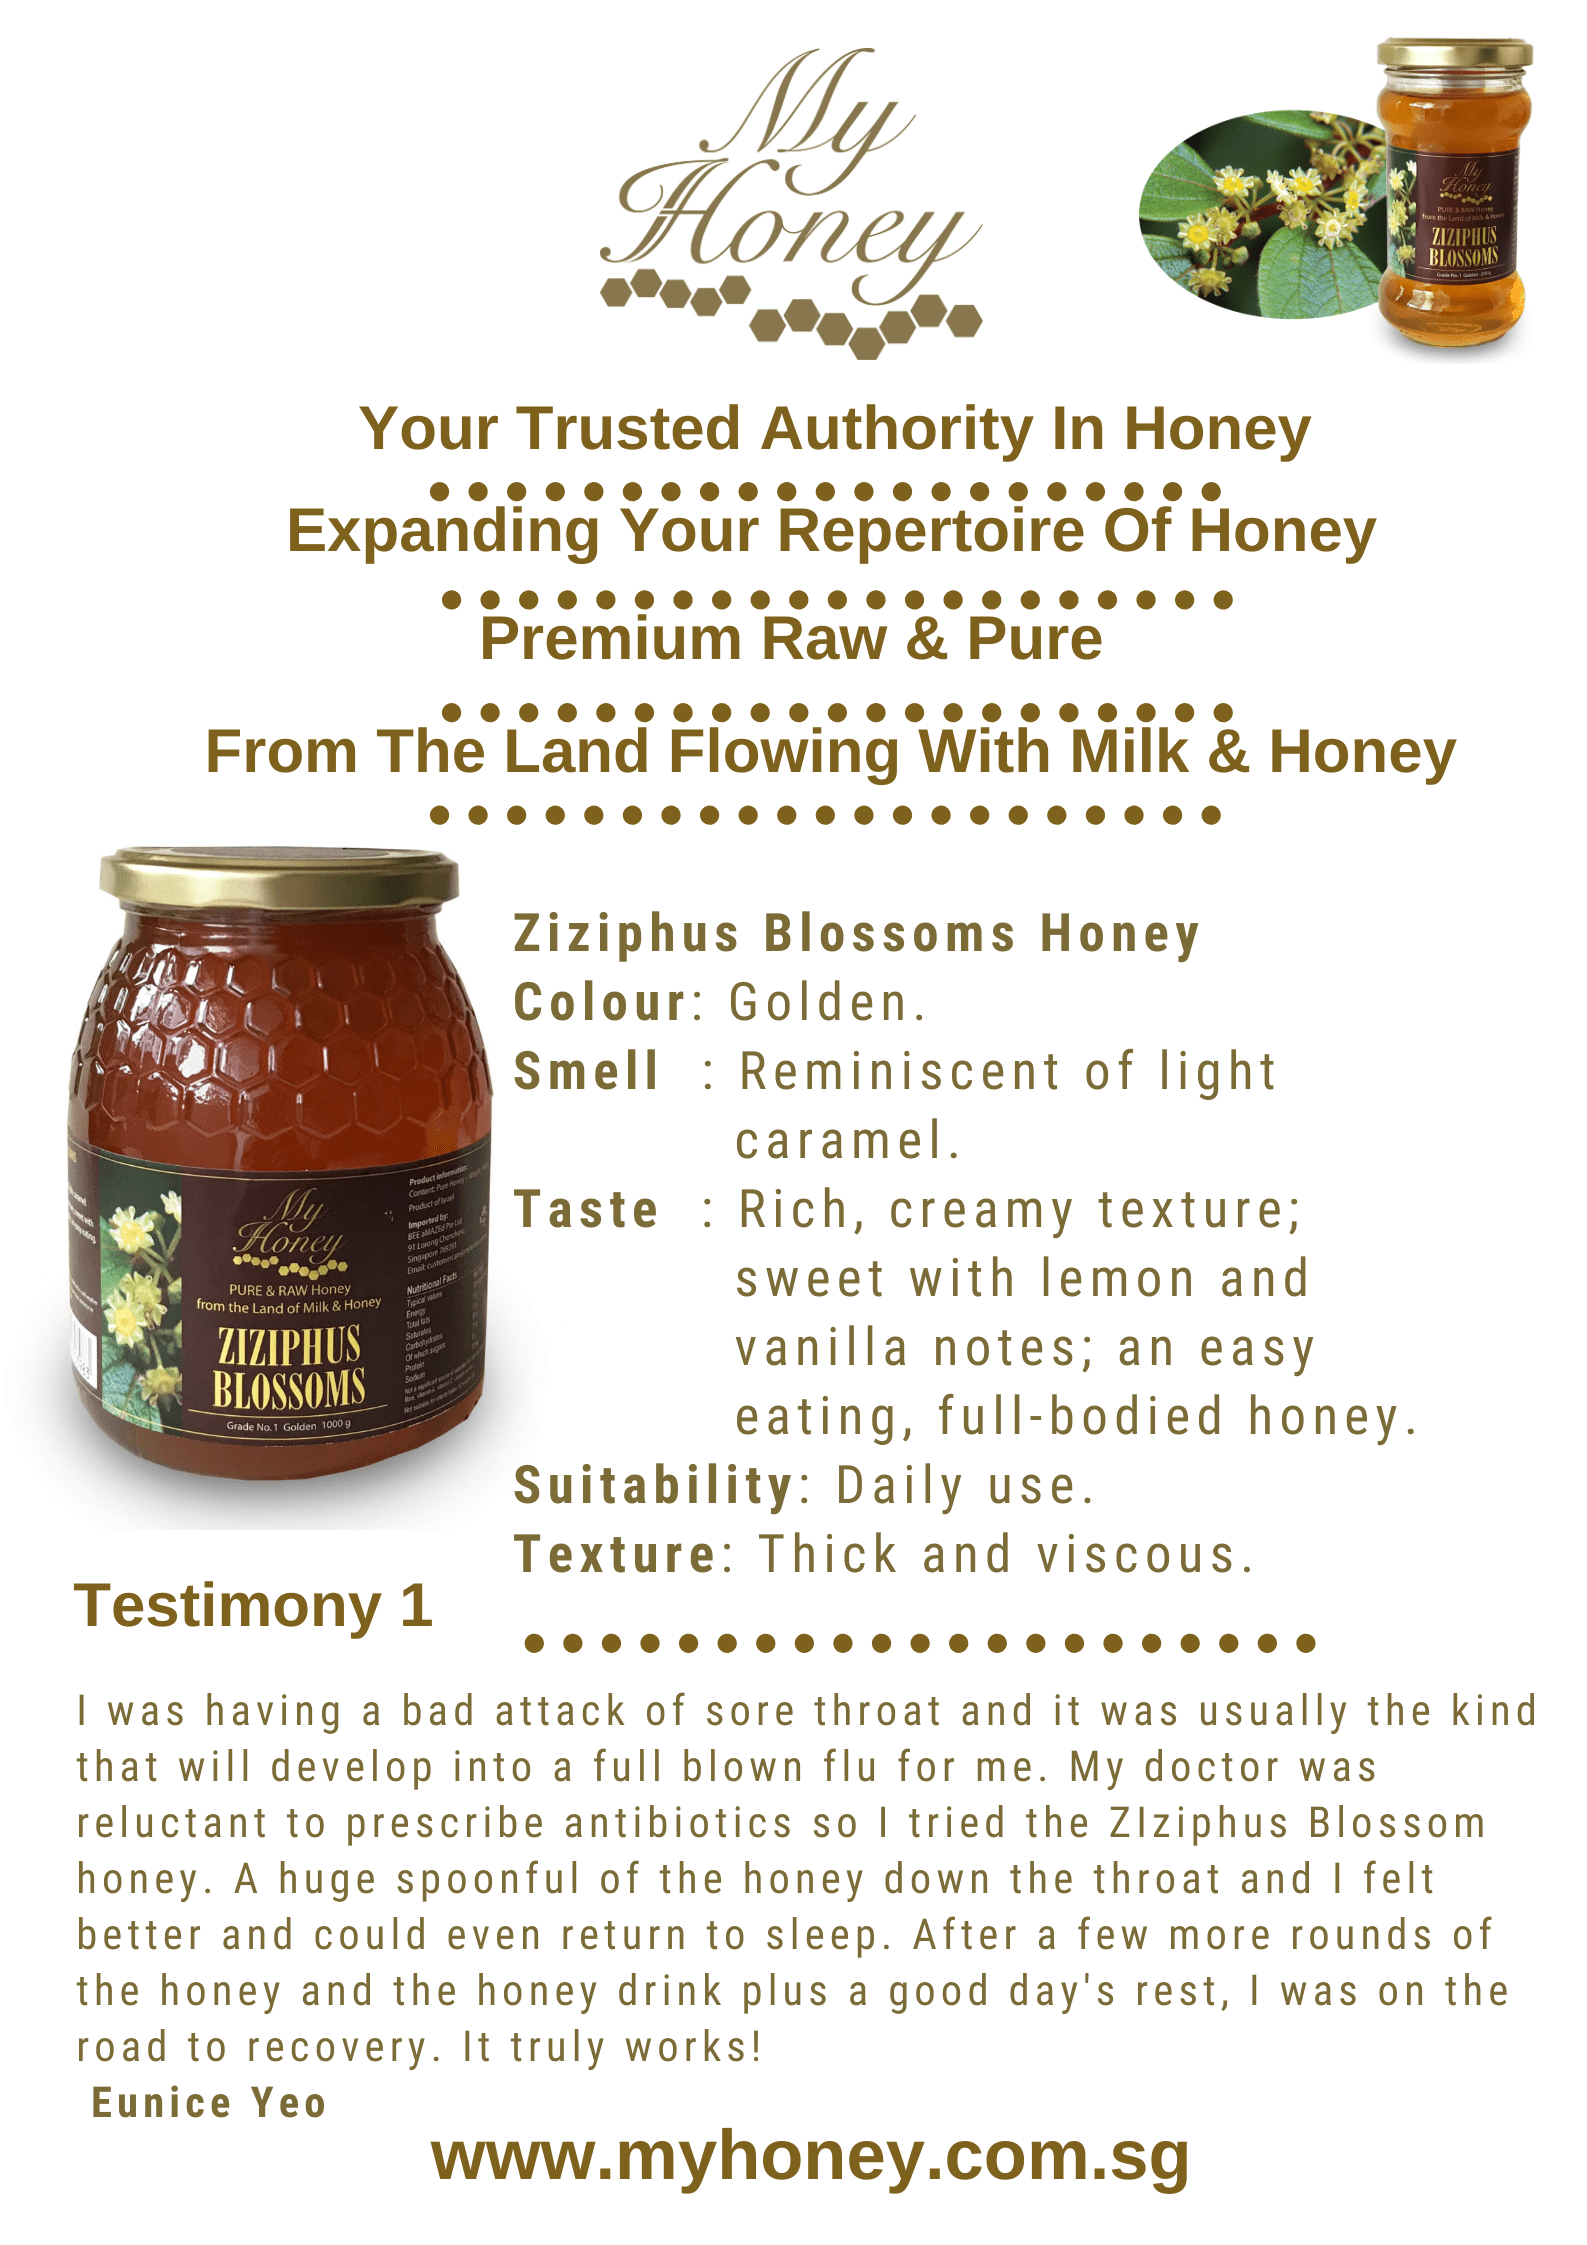 MyHoney Testimony